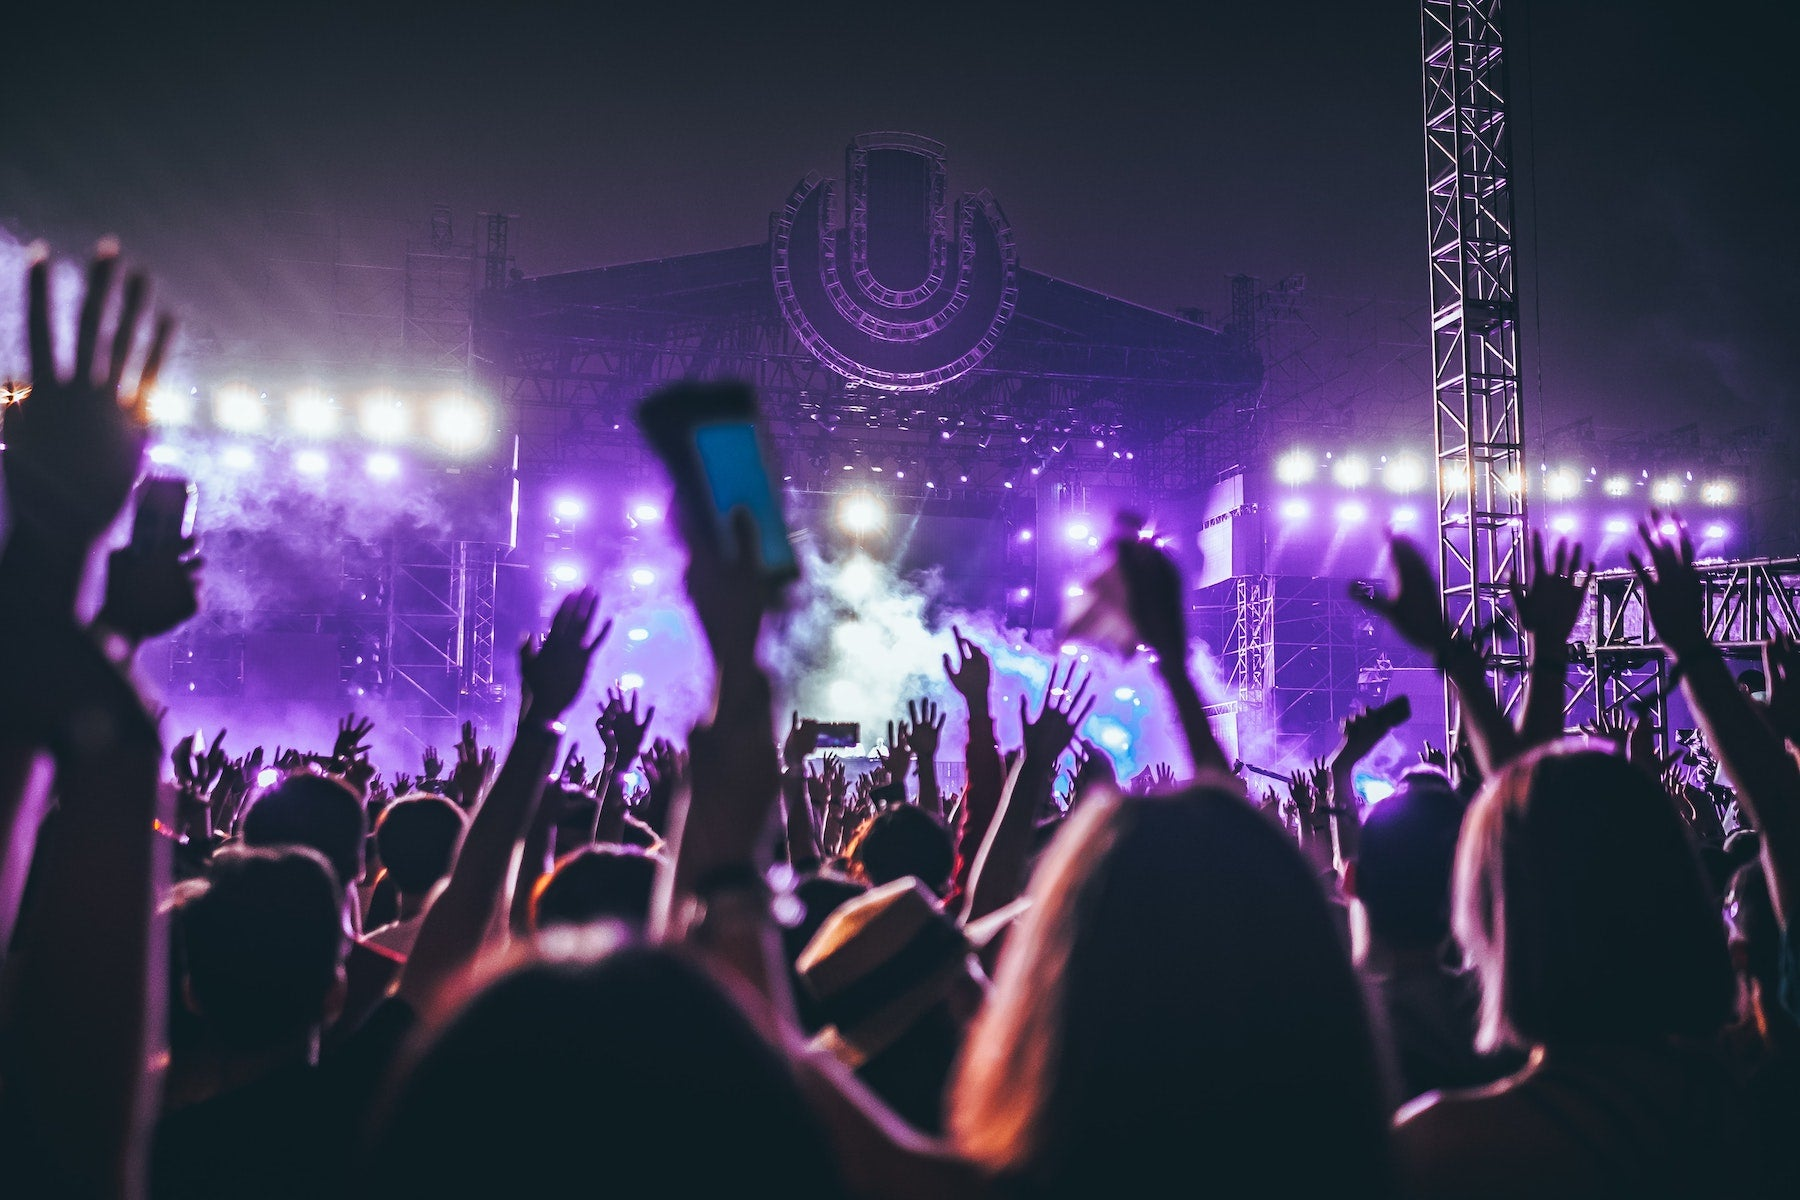 The Top 5 Music Festivals We Missed in 2020